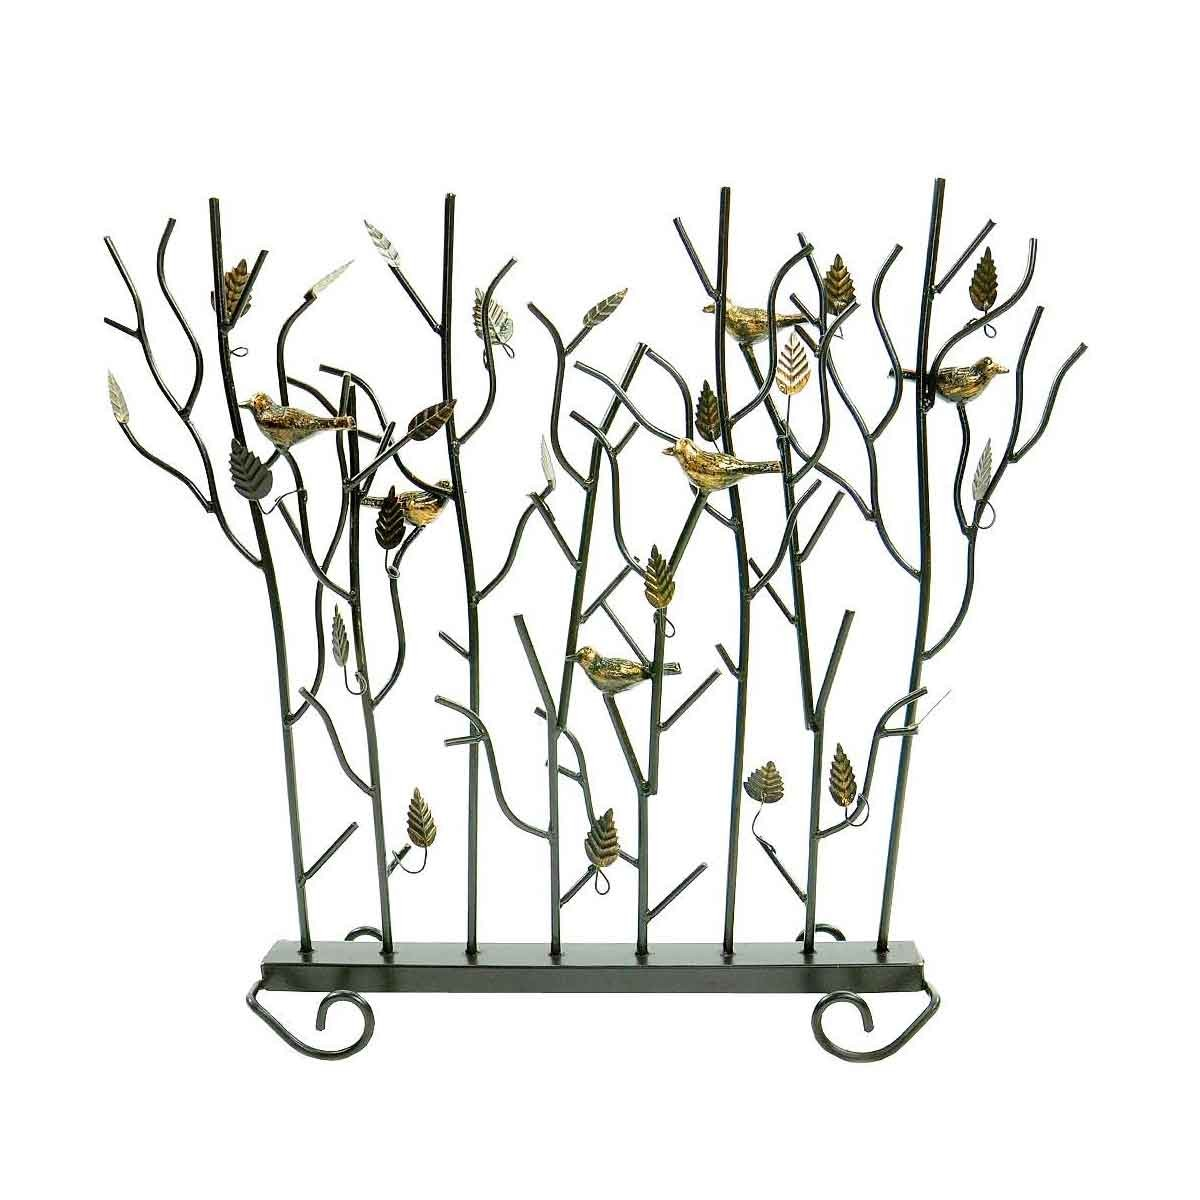 nle5mm_ssb_01_00_birds-summer-fireplace-screen-roman-bronze-powdercoat-accented-with-gold-1